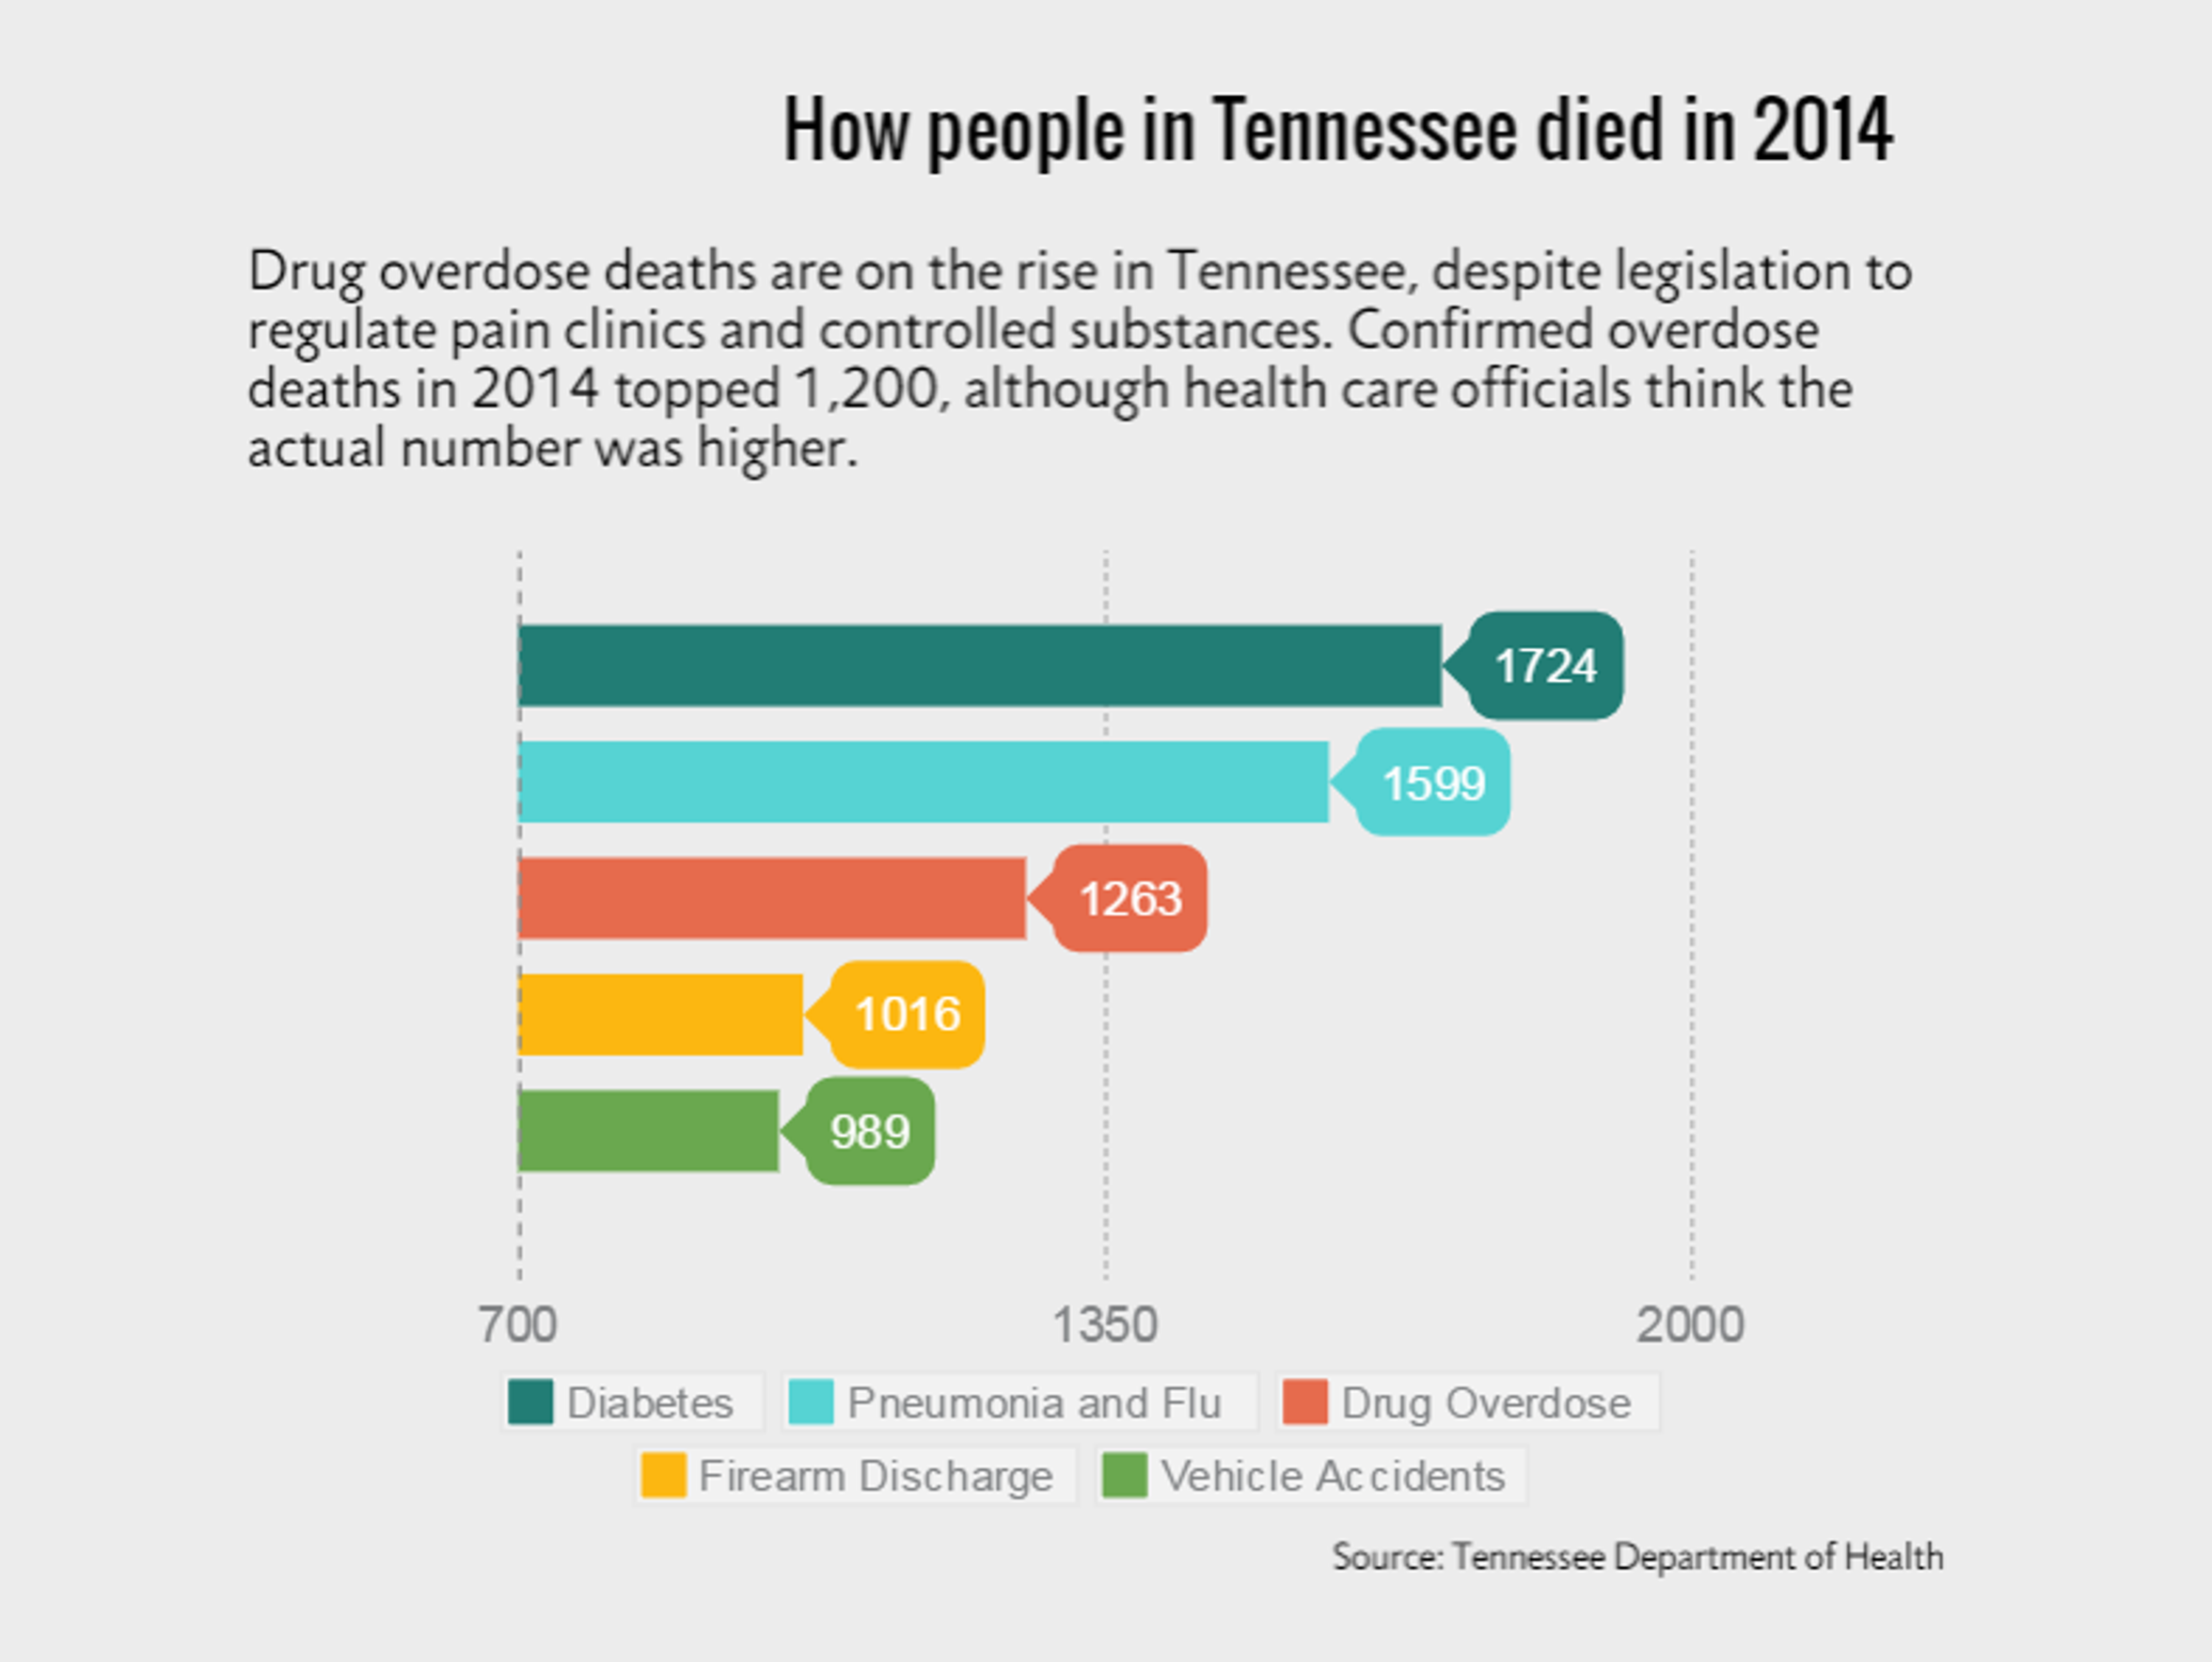 Drug overdose deaths are on the rise in Tennessee.